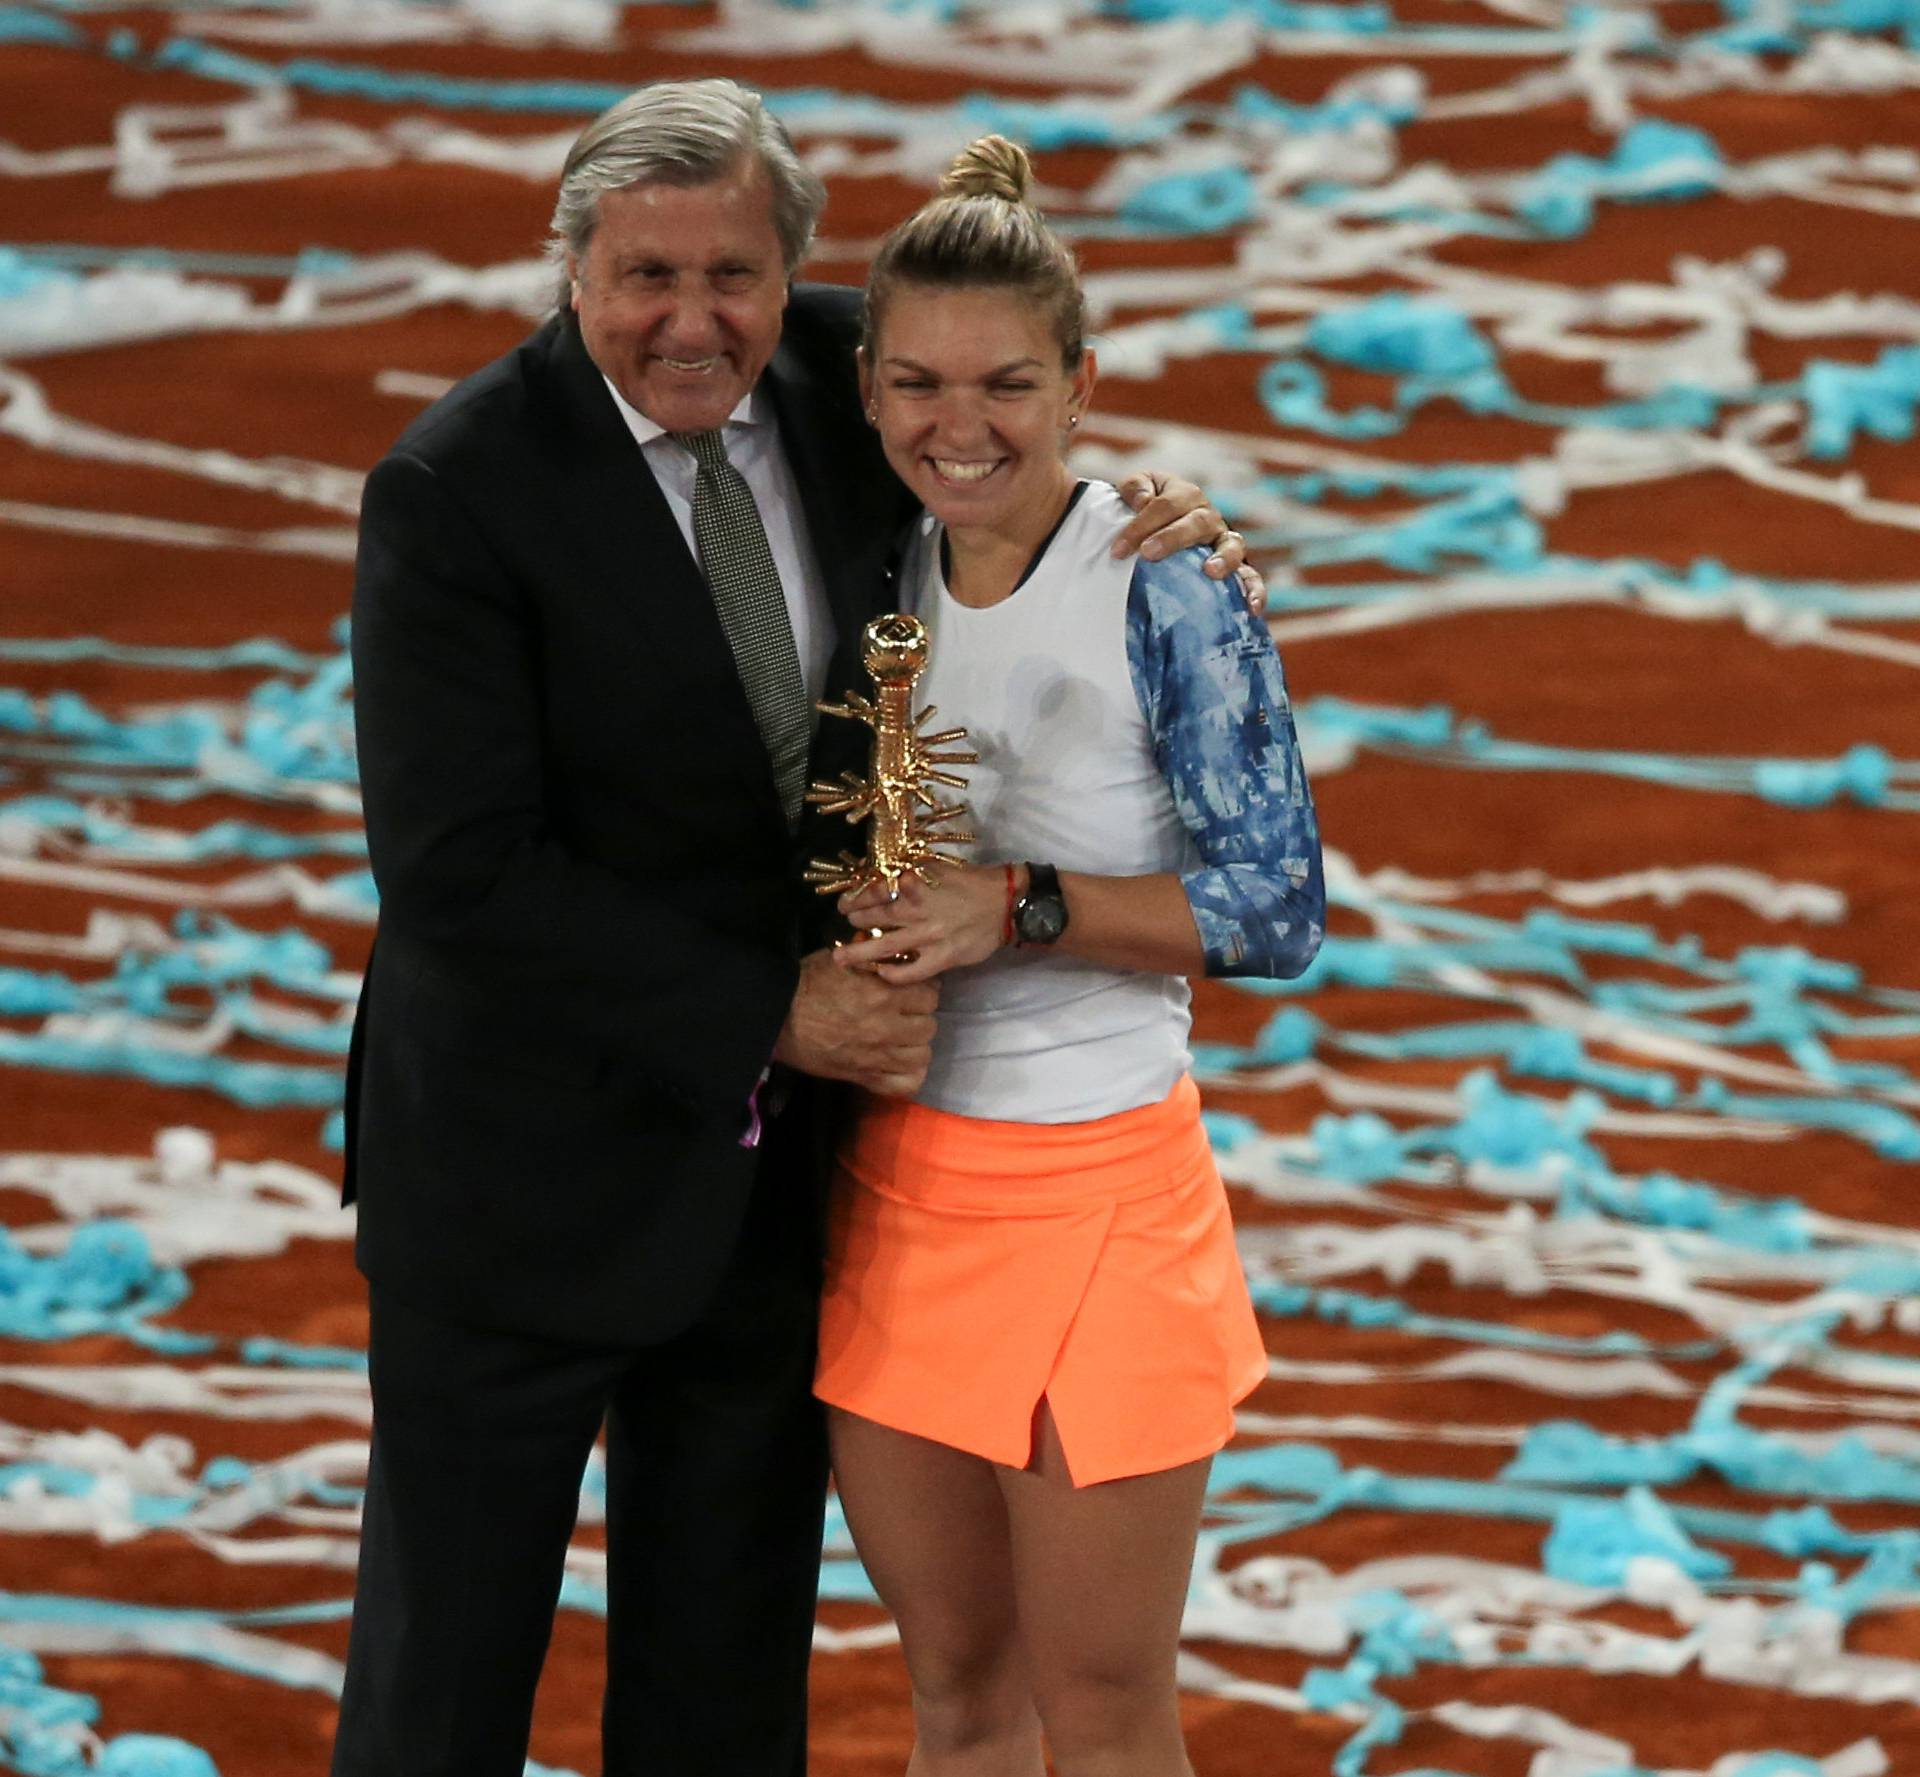 Tennis - WTA - Madrid Open - Women's Singles Final